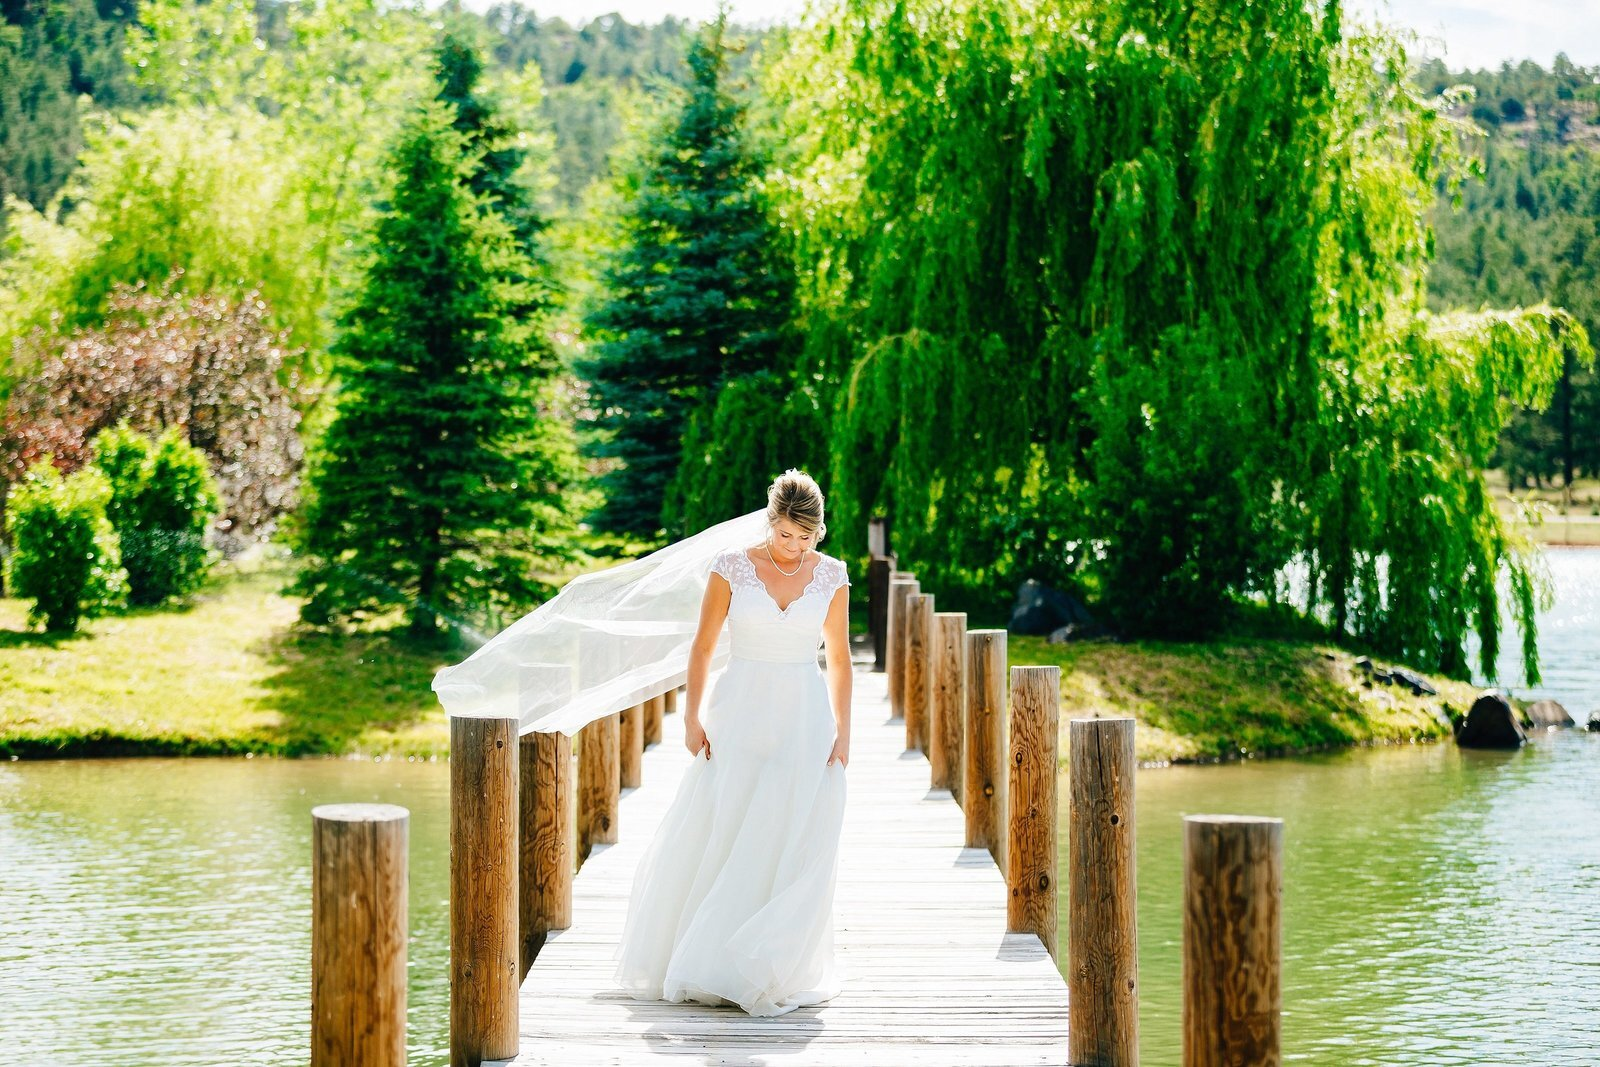 Bride in heirloom 50s vintage wedding dress from grandmother walking in the wood bridge of the river.jpg